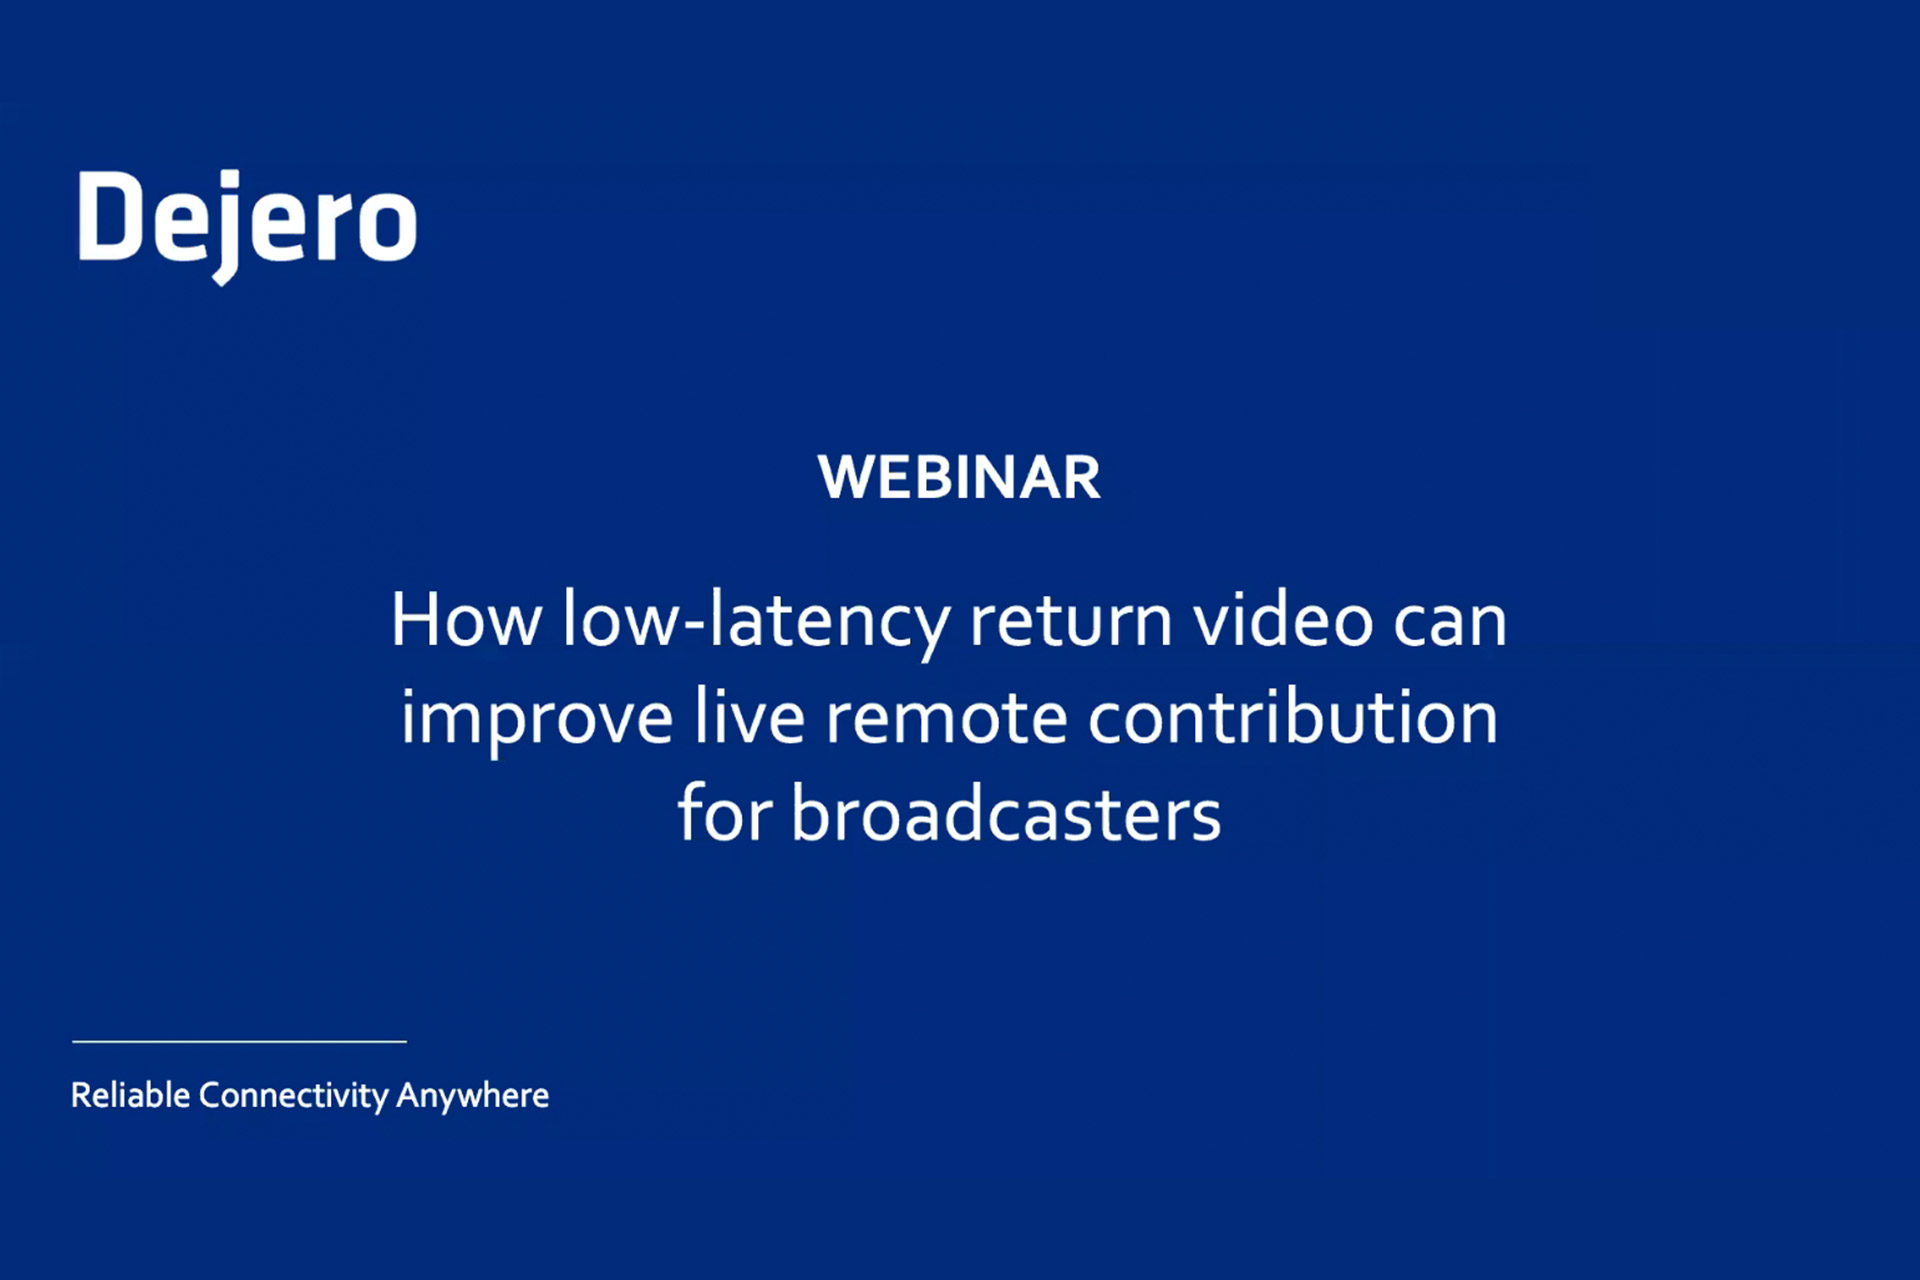 How low-latency return video can improve live remote contribution for broadcasters